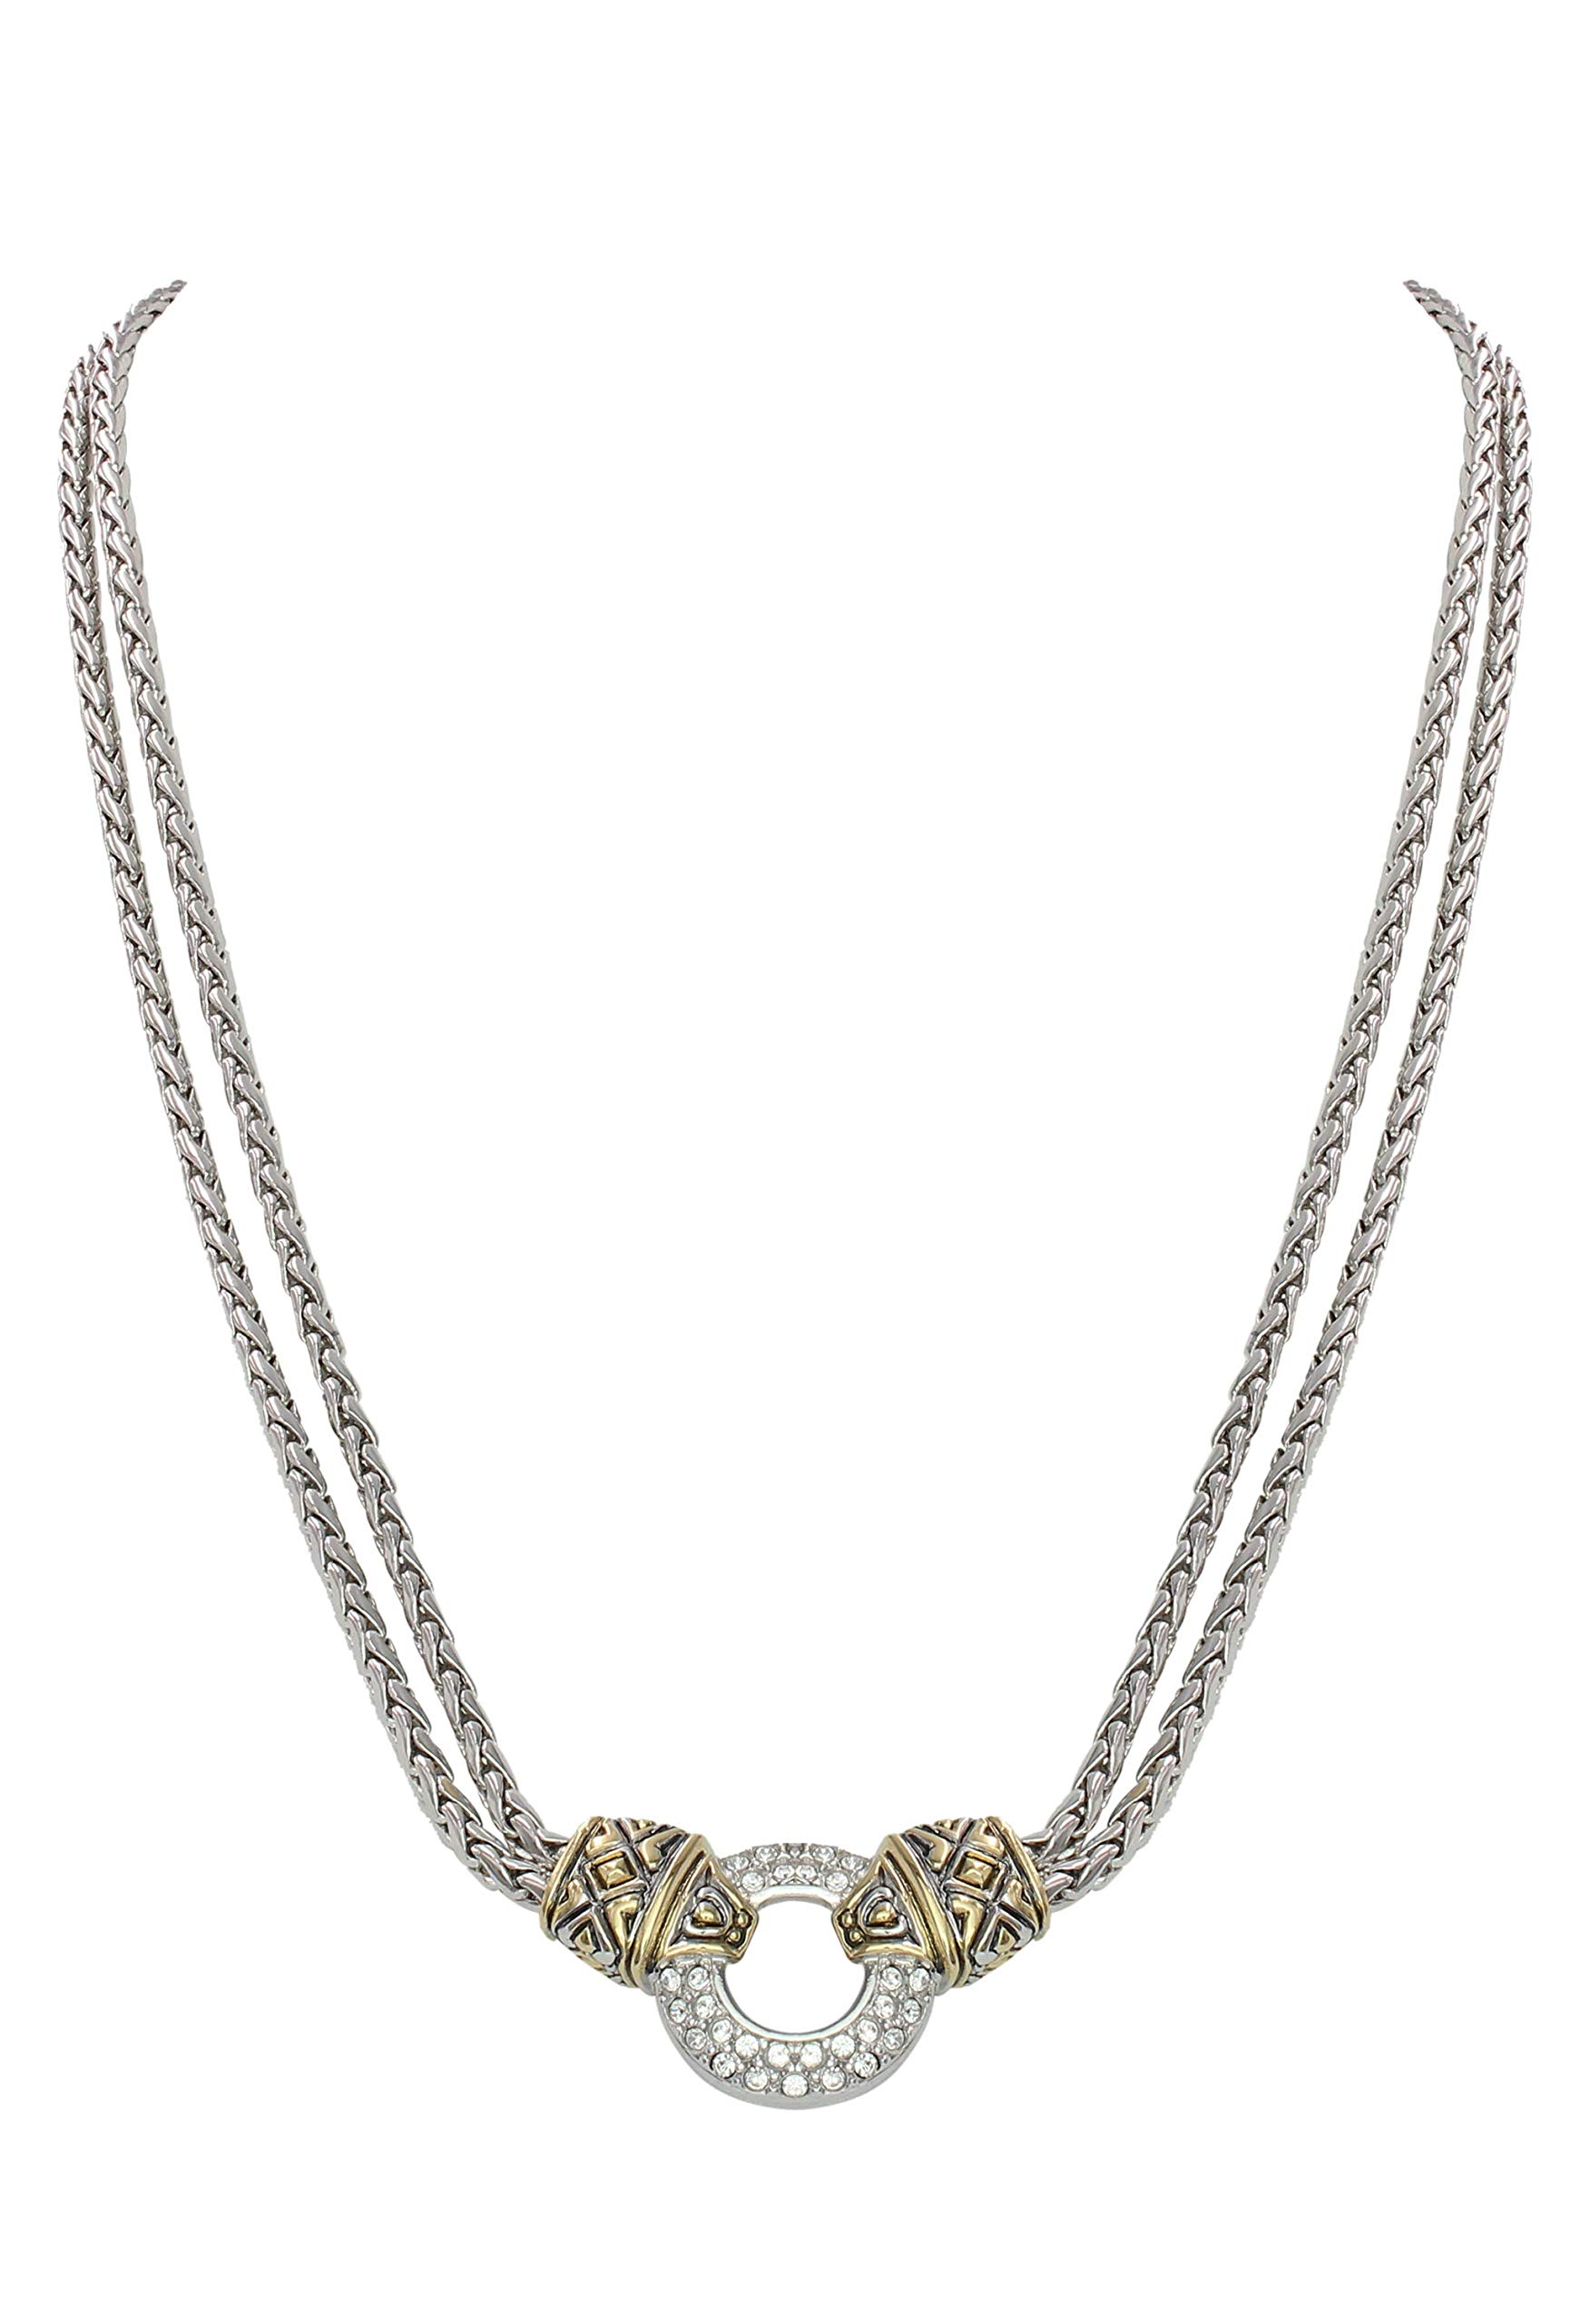 John Medeiros Pavè Setting Cubic-Zirconia Circle Double Strand Gold and Silver Tone Necklace 16'' Inner Diameter Made in The USA by John Medeiros (Image #1)